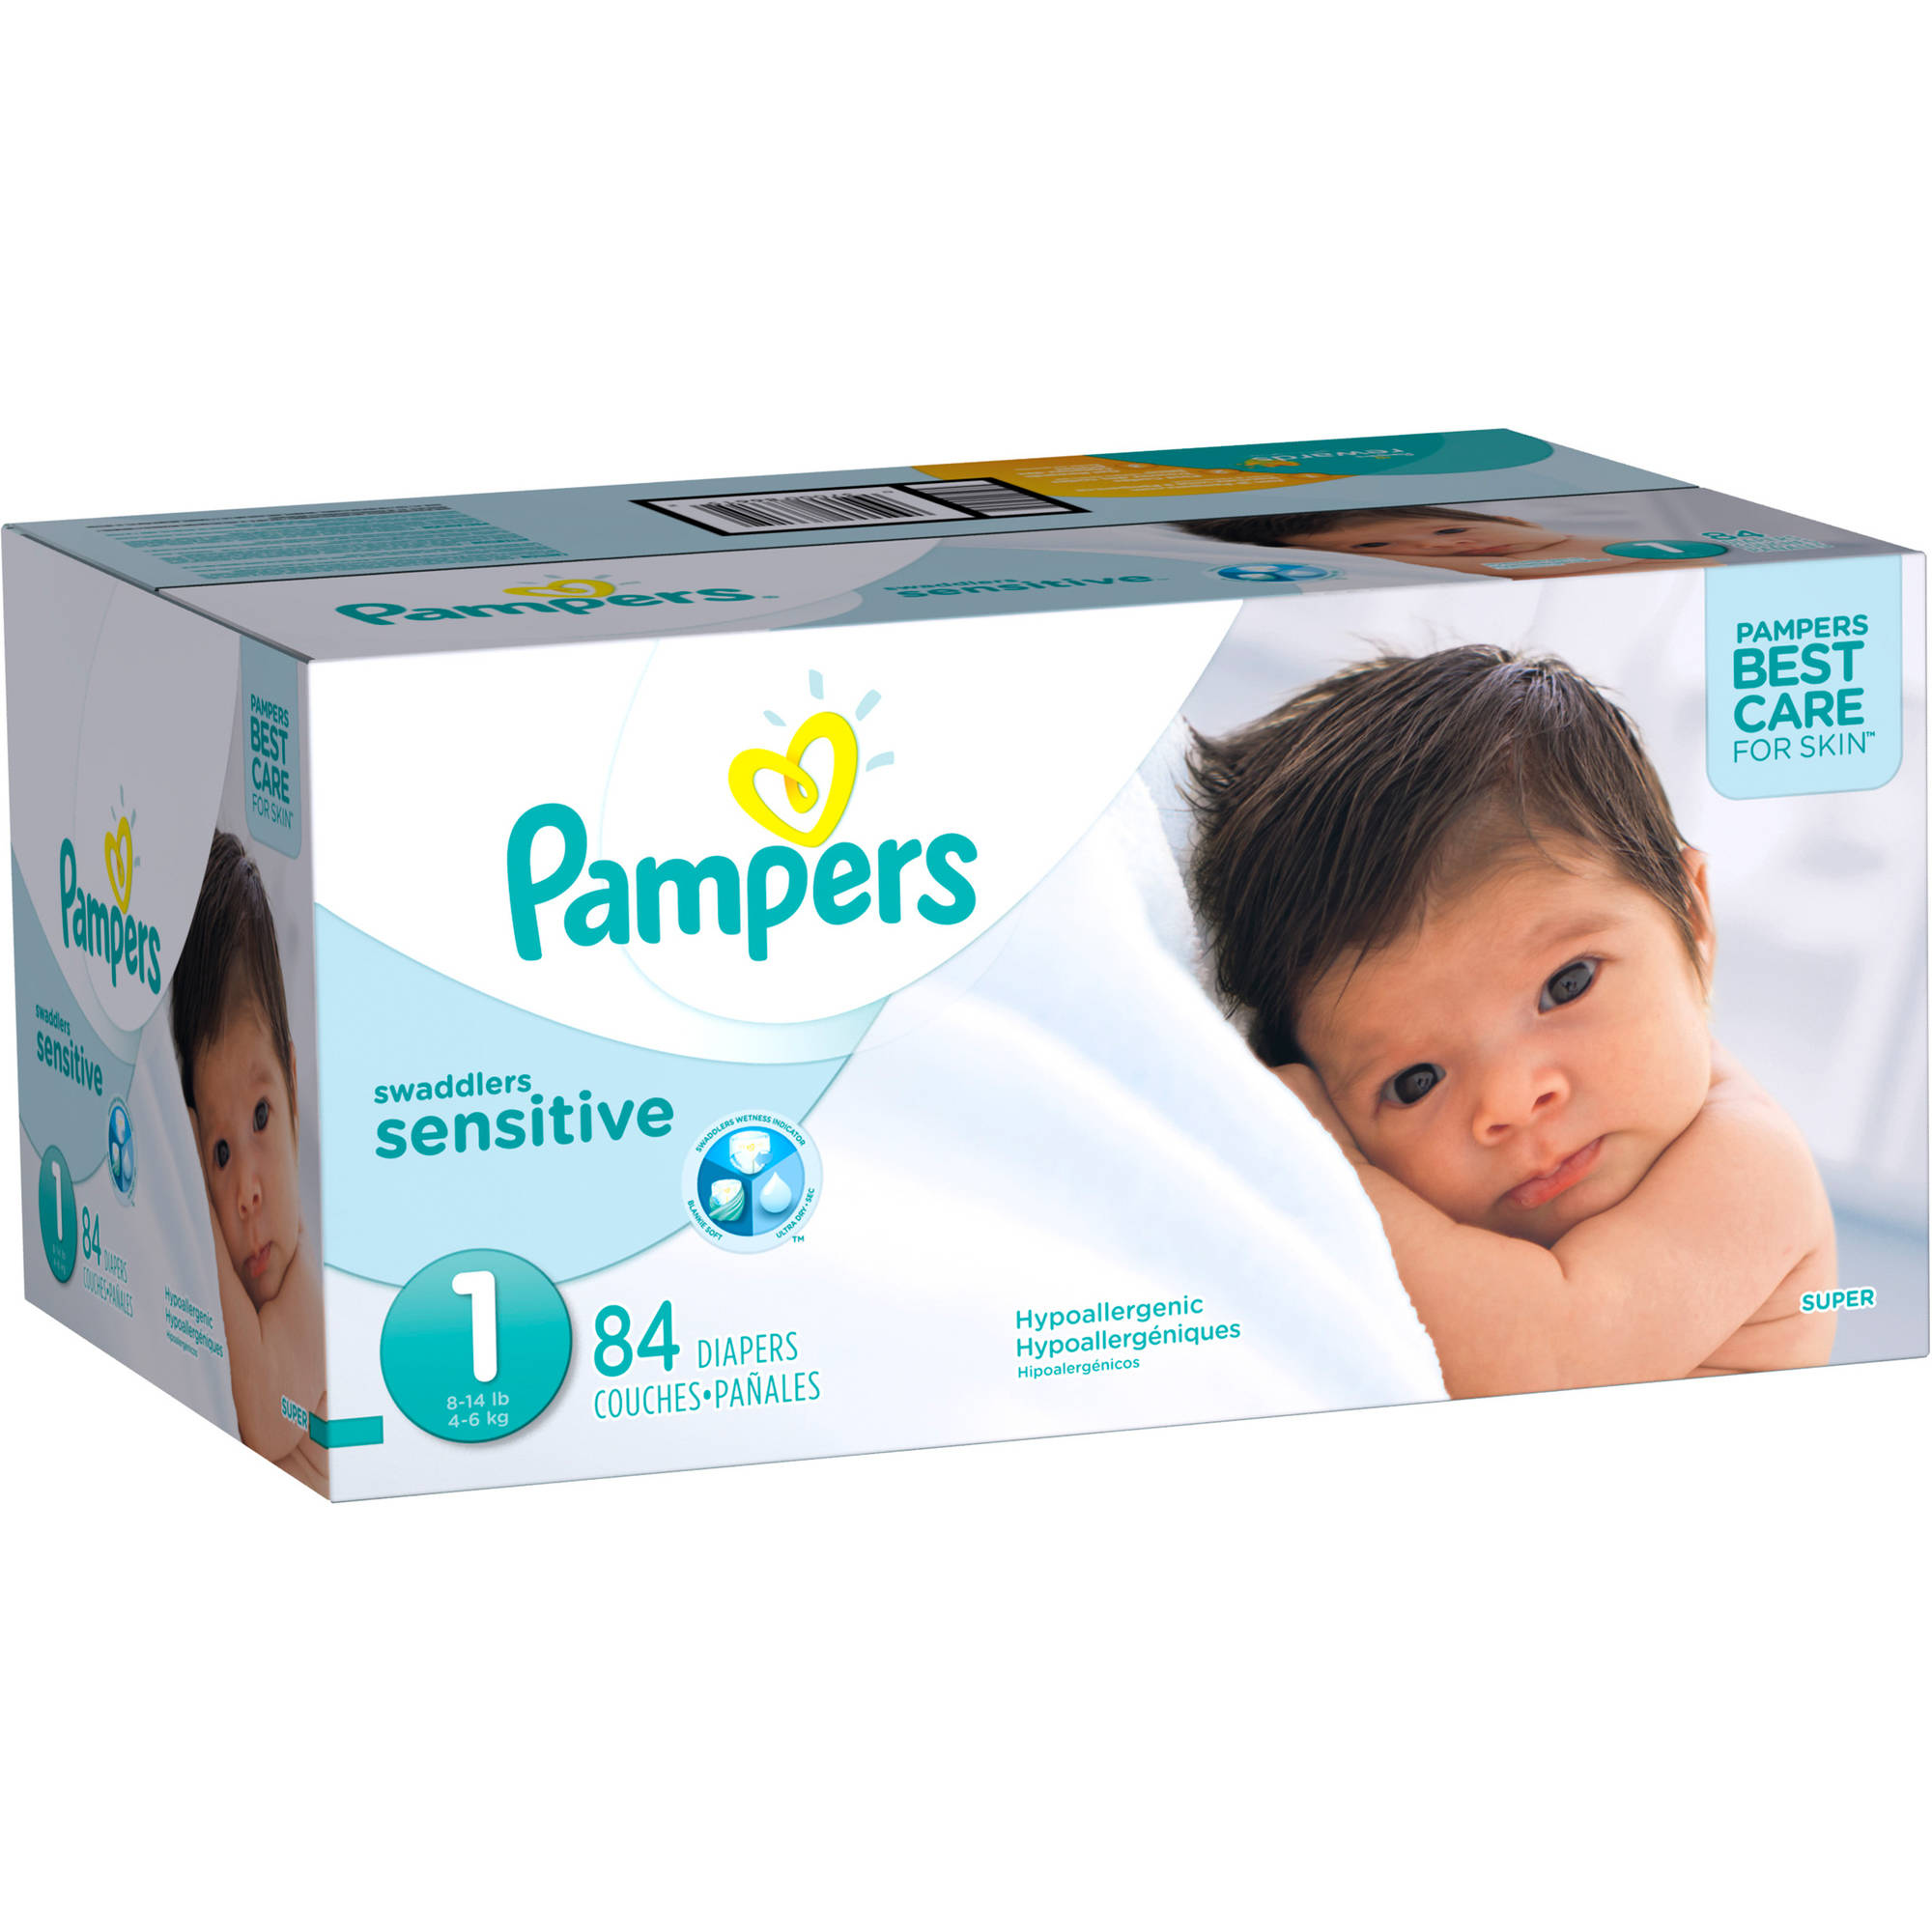 Pampers Swaddlers Sensitive Disposable Diapers